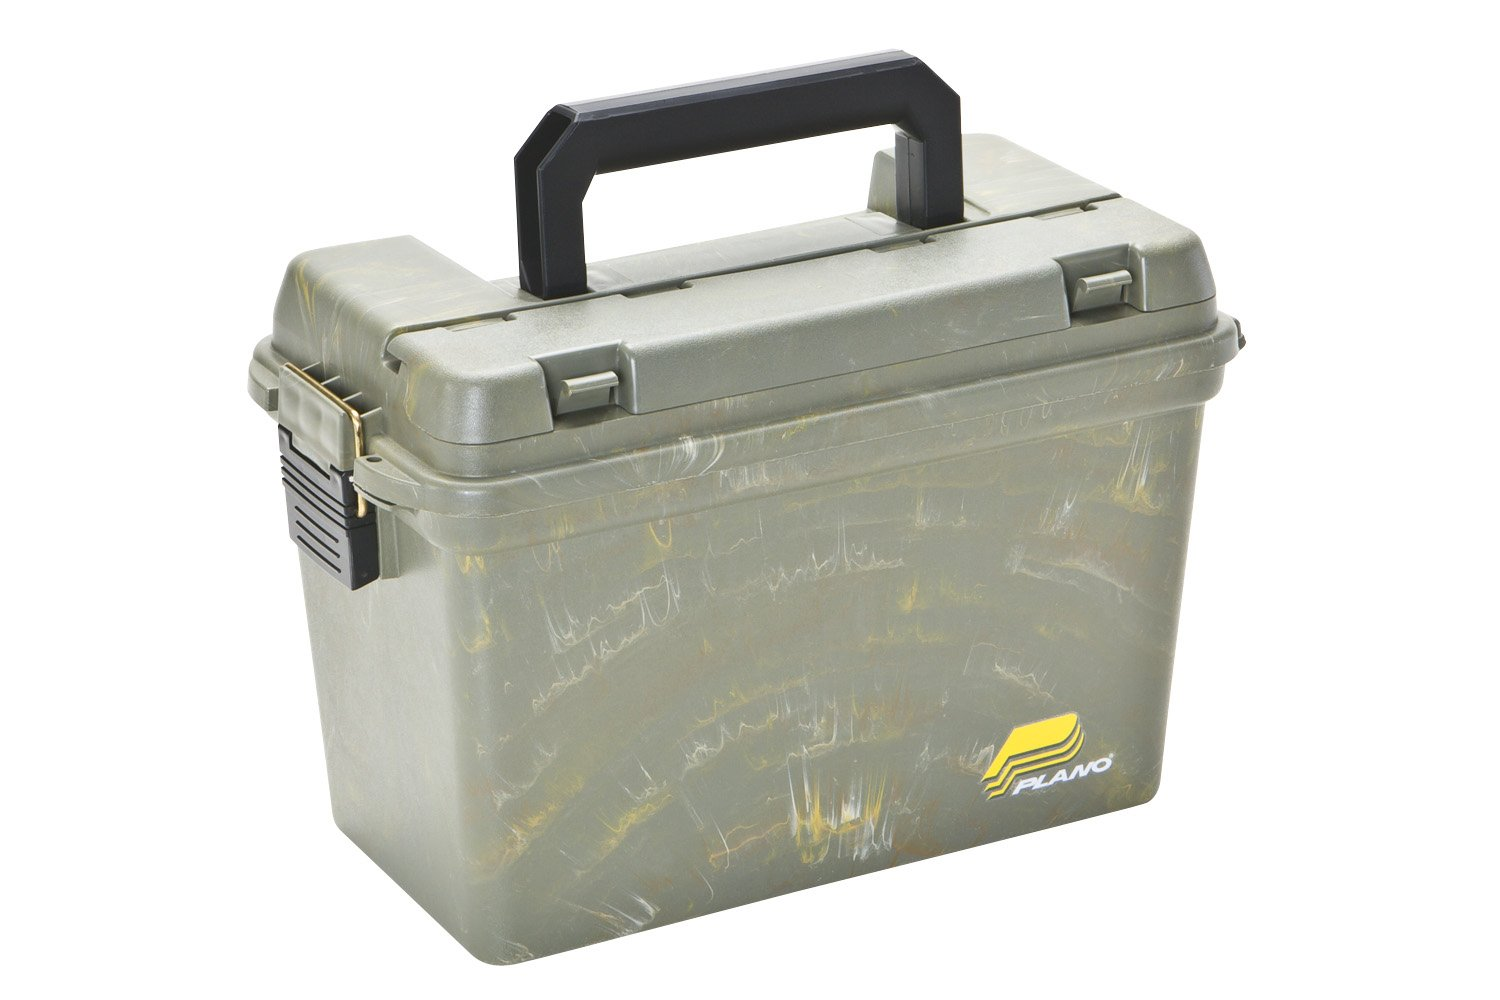 Plano 1612 Deep Water Resistant Field Box with Lift Out Tray.